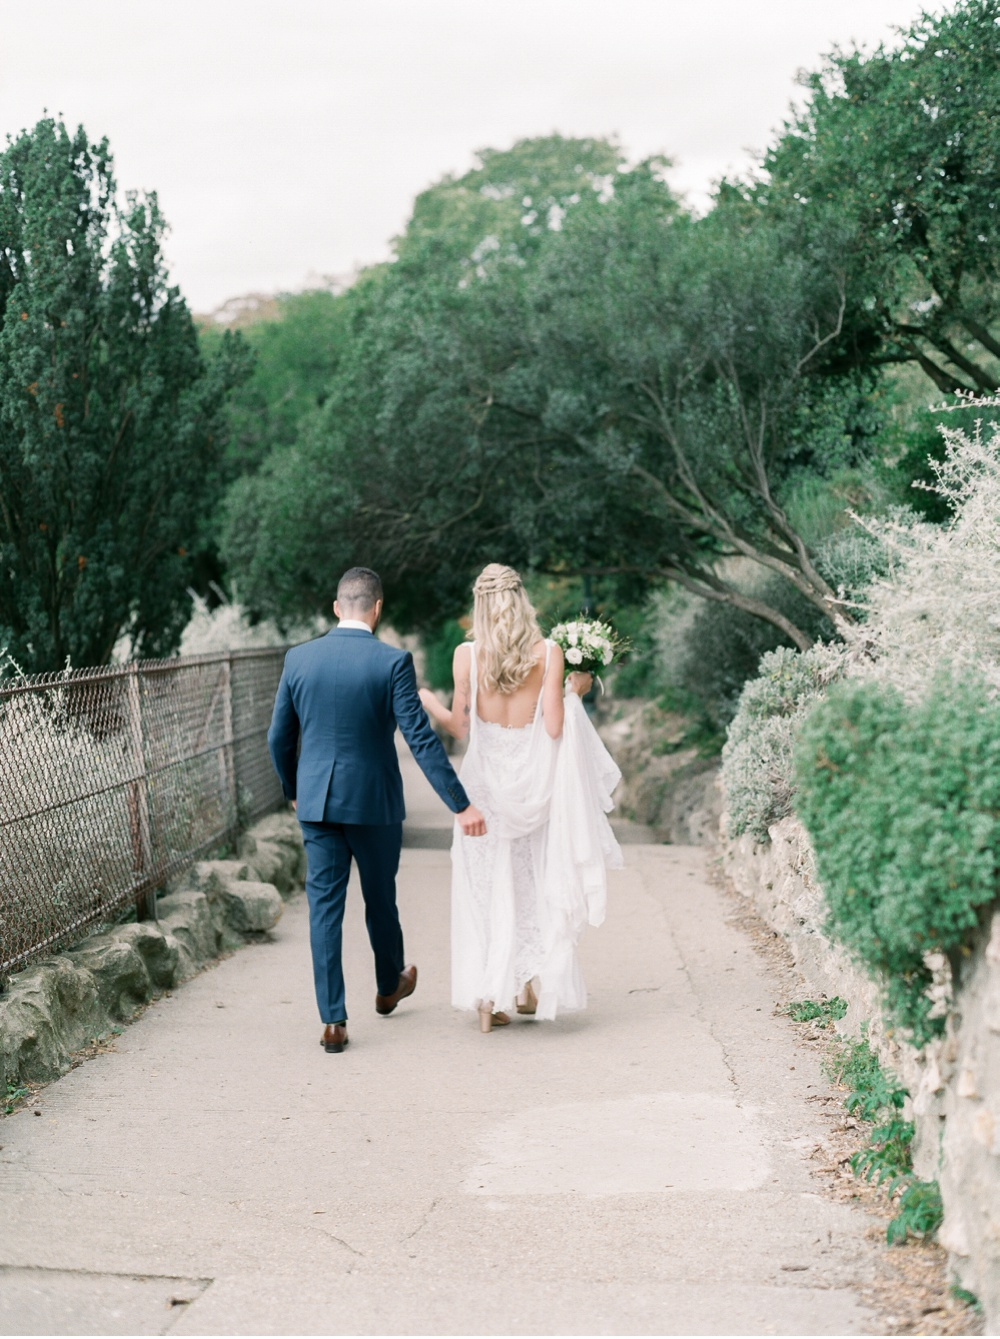 Paris_Elopement_wedding_Photographer©MadalinaSheldon_0074.jpg